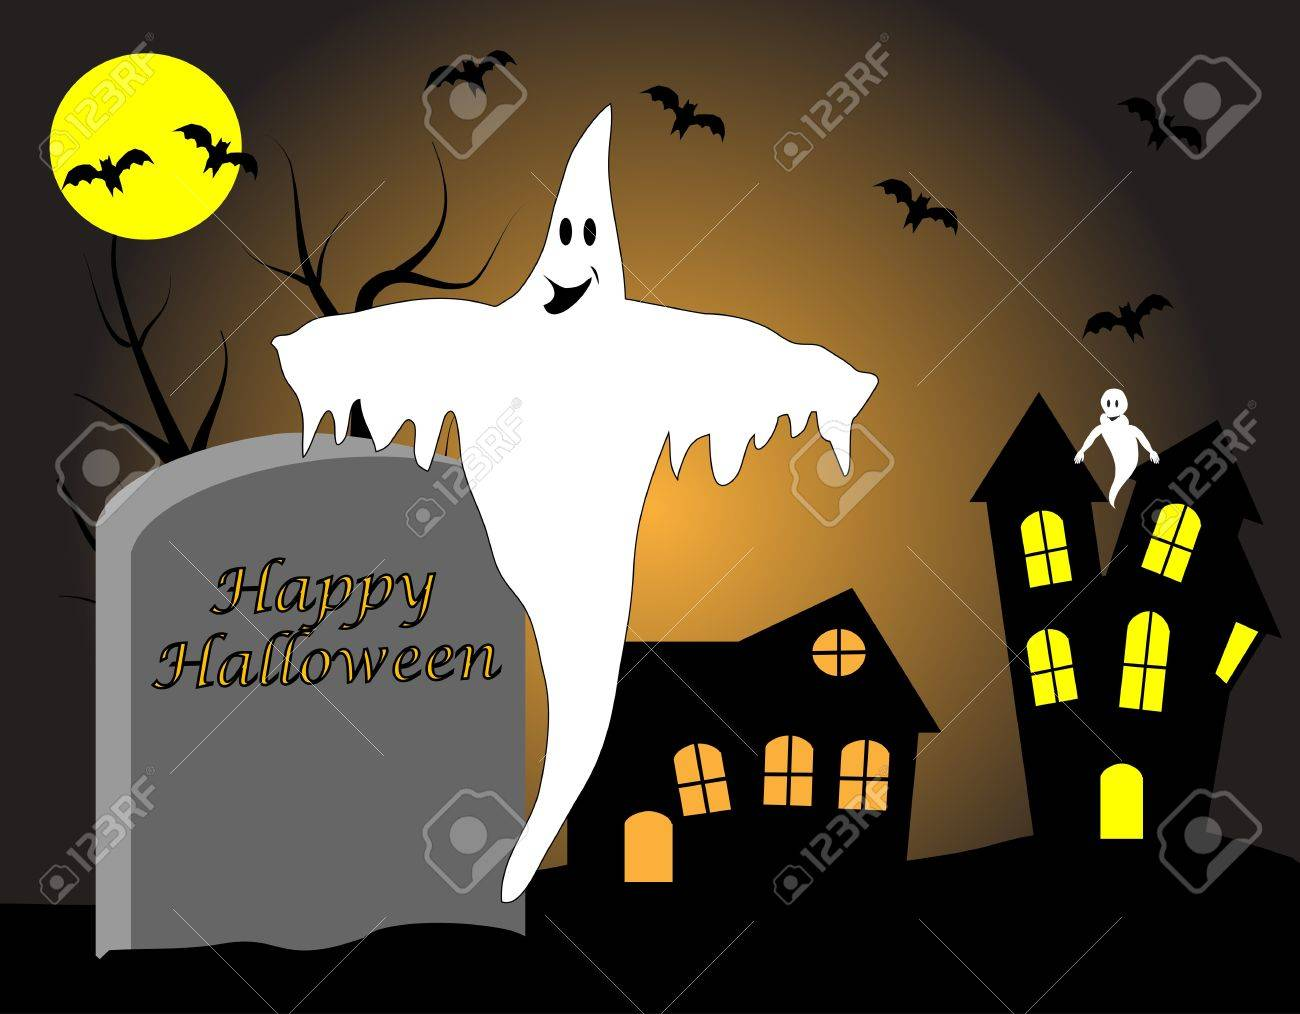 A halloween illustration with a haunted house and ghosts Stock Vector - 7006169